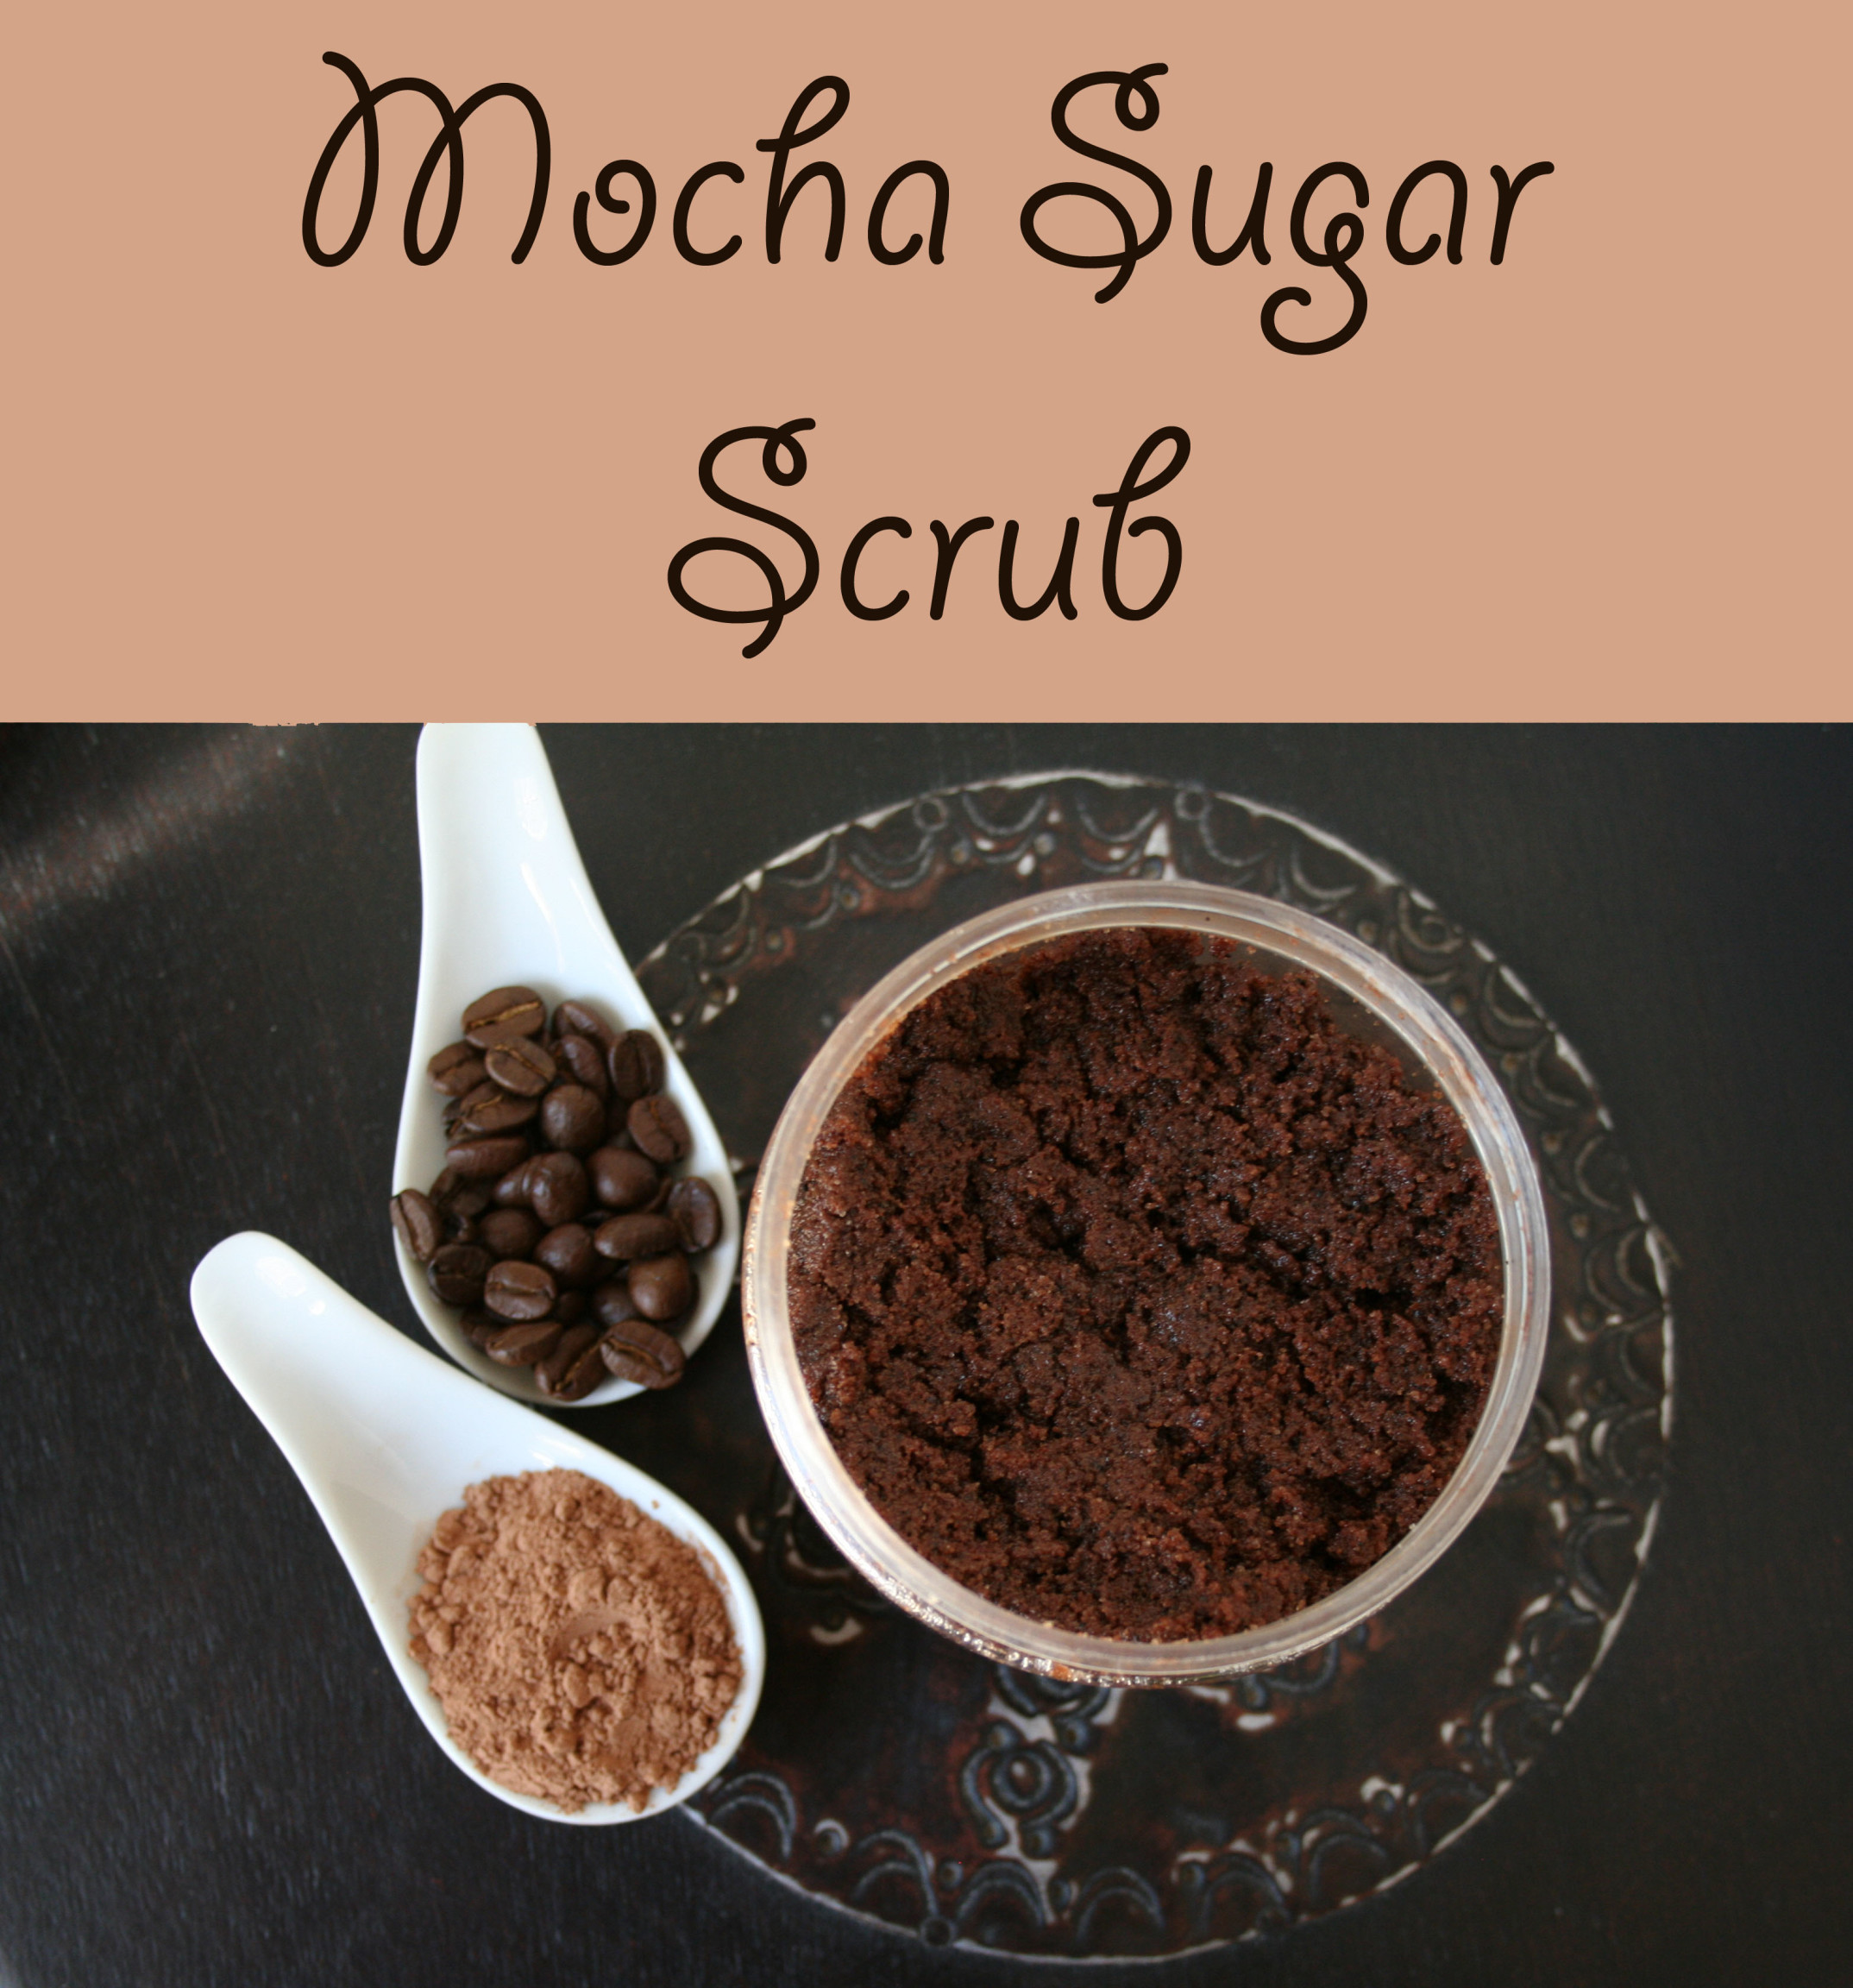 Mocha Sugar Scrub photo with text.